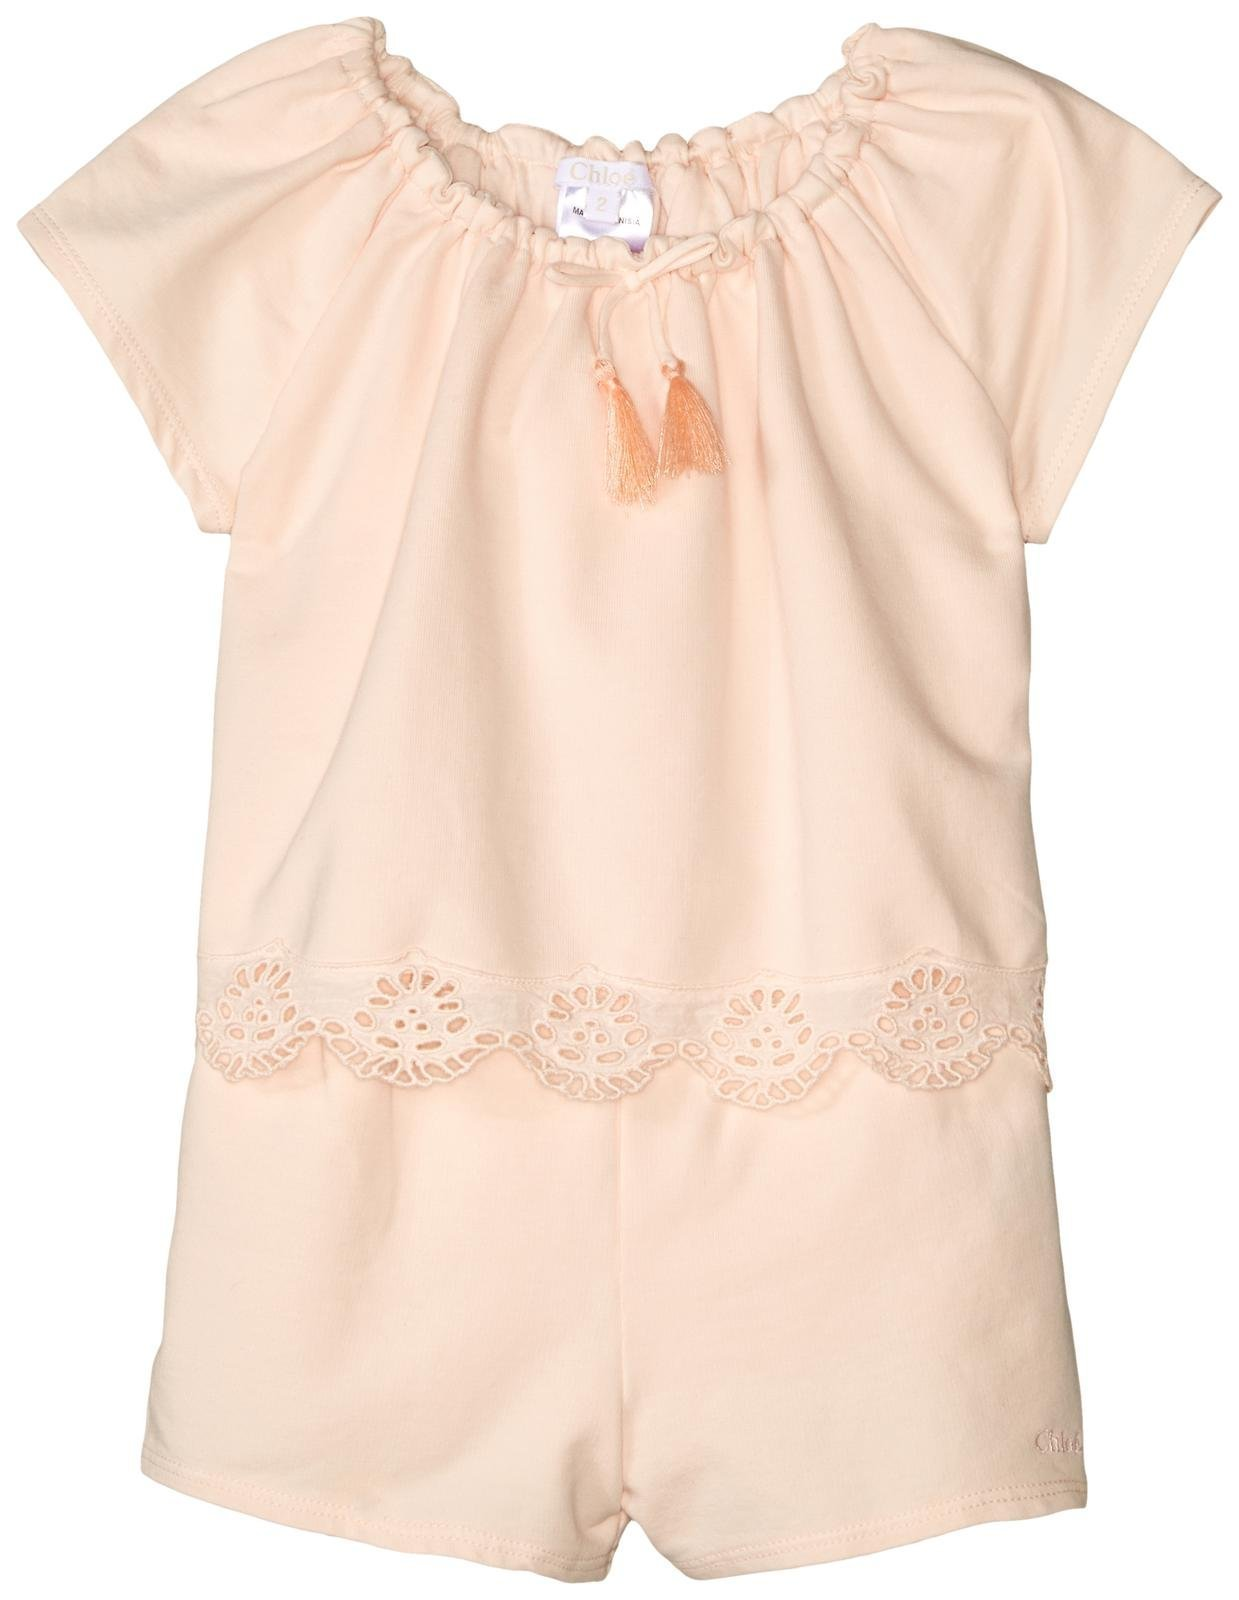 Chloe Baby Girls' Milano Short Overalls Toddler, Rose Pale, 3A